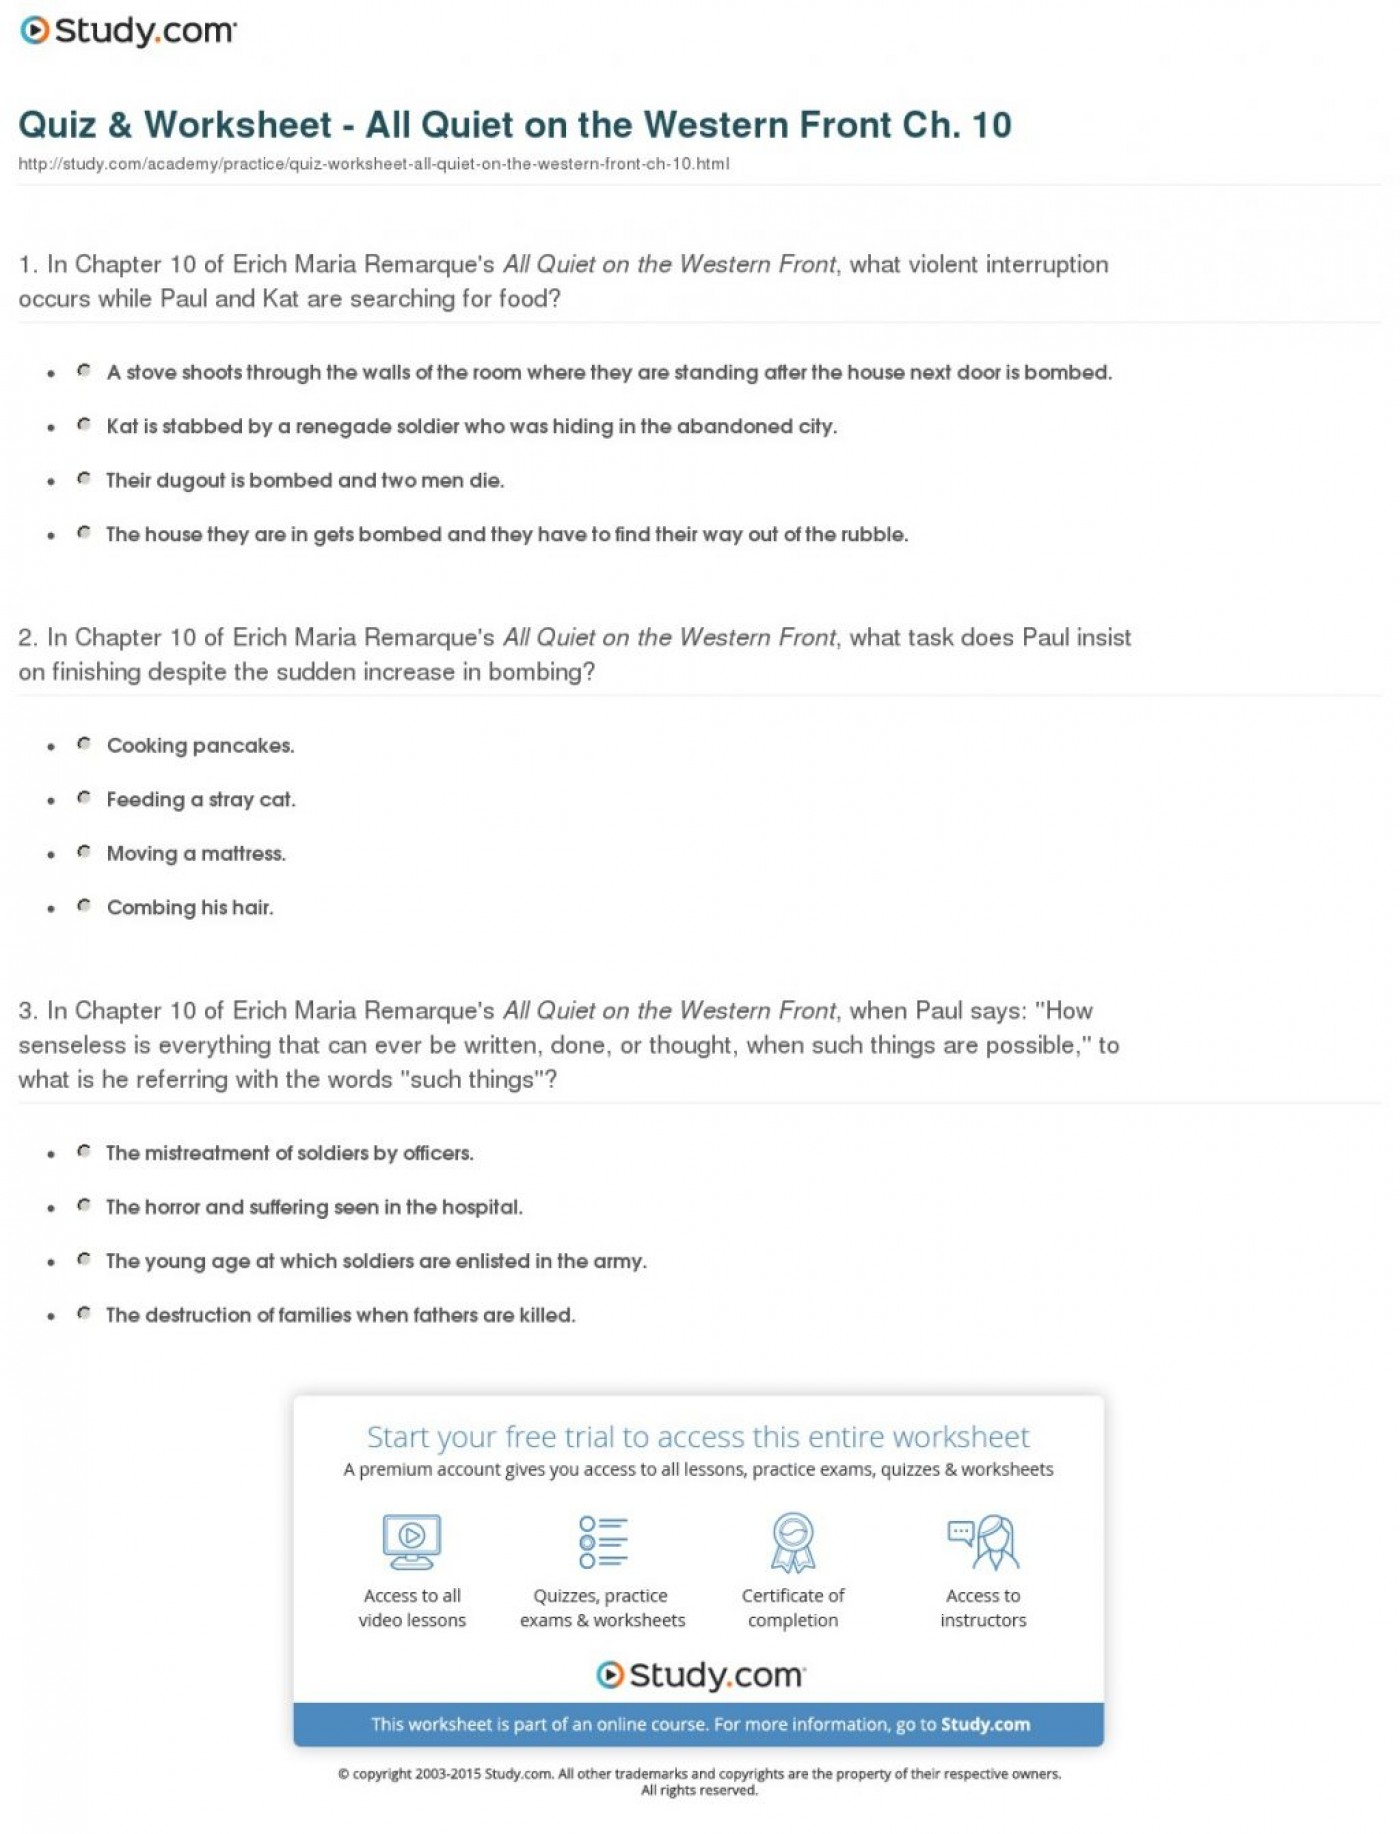 003 Quiz Worksheet All Quiet On The Western Front Ch Essays Compare And Contrast Essay Writing Help Buy Your20 1024x1342 Frightening Questions Topics 1400